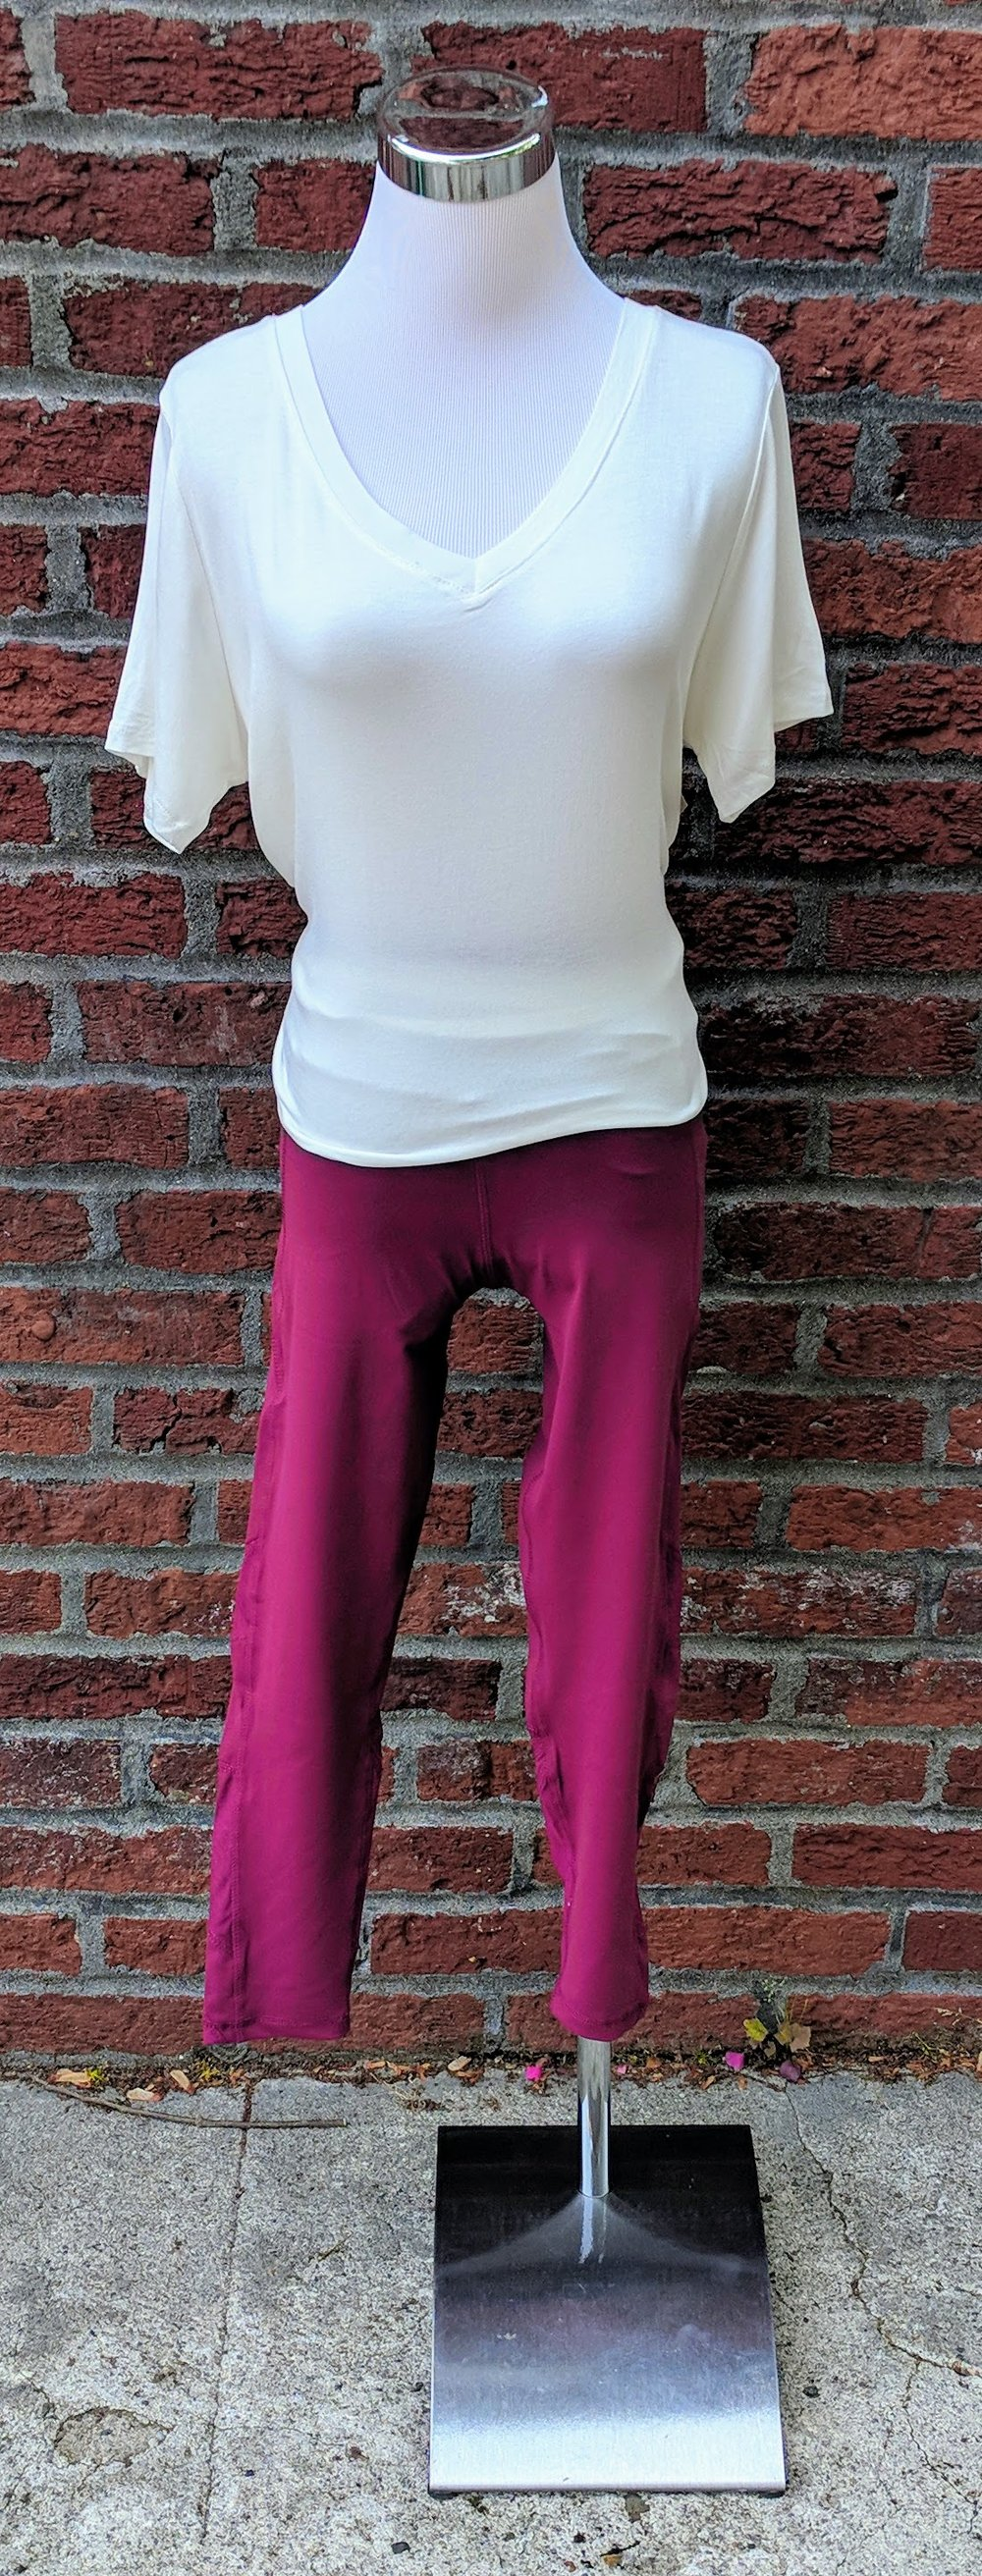 Deep plum leggings with mess accent on back of calves.